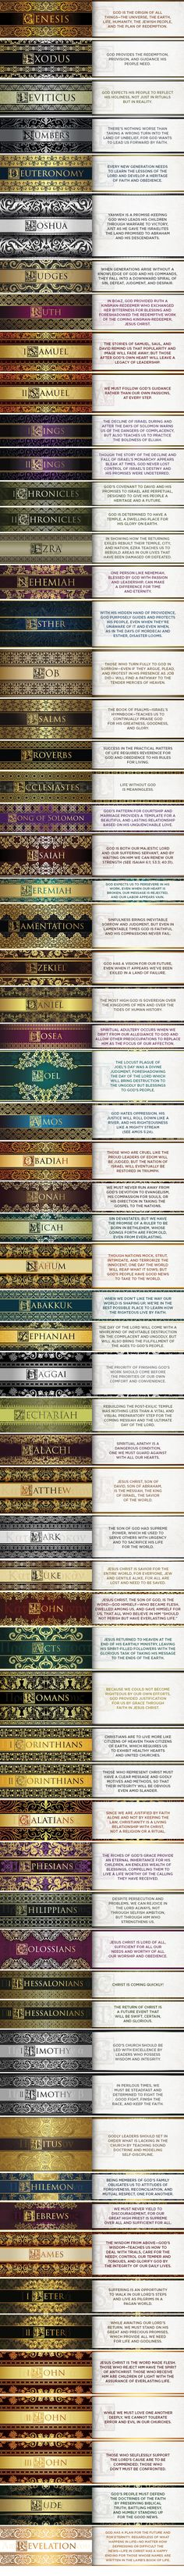 Take the fastest journey through the Bible you have ever experience. Understanding the Books of the Bible will orient you with each of God's special books, Genesis through Revelation, whether you're a new reader or a veteran student. This beautiful, full-color hardback volume offers fresh insights into familiar parts of the Bible, and an exciting grasp on hard-to-understand passages.